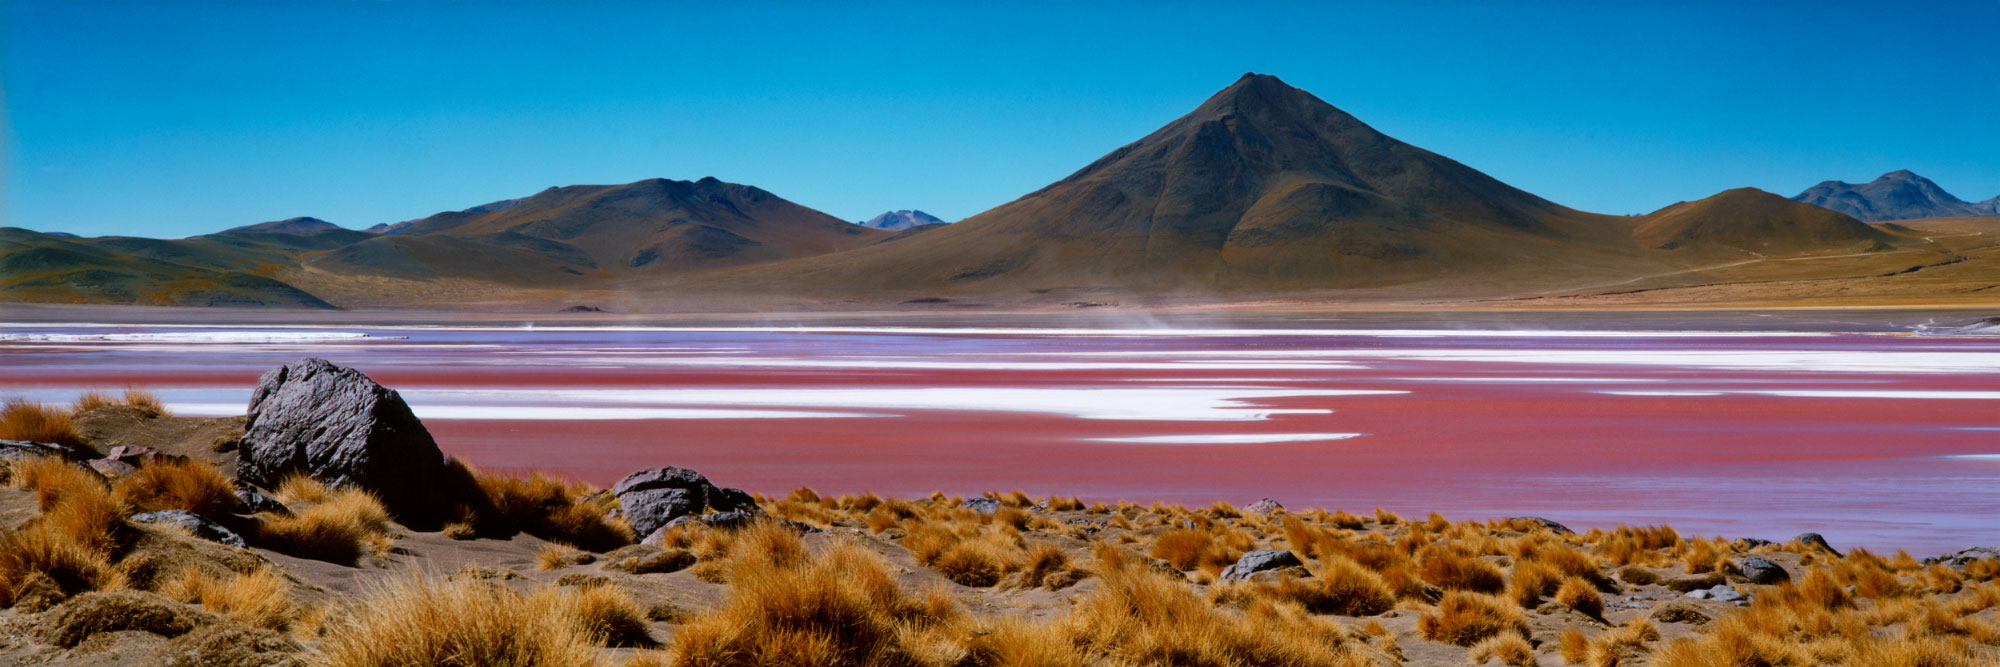 7621-voyage-bolivie-laguna-colorada-lipez-panorama-sentucq-h